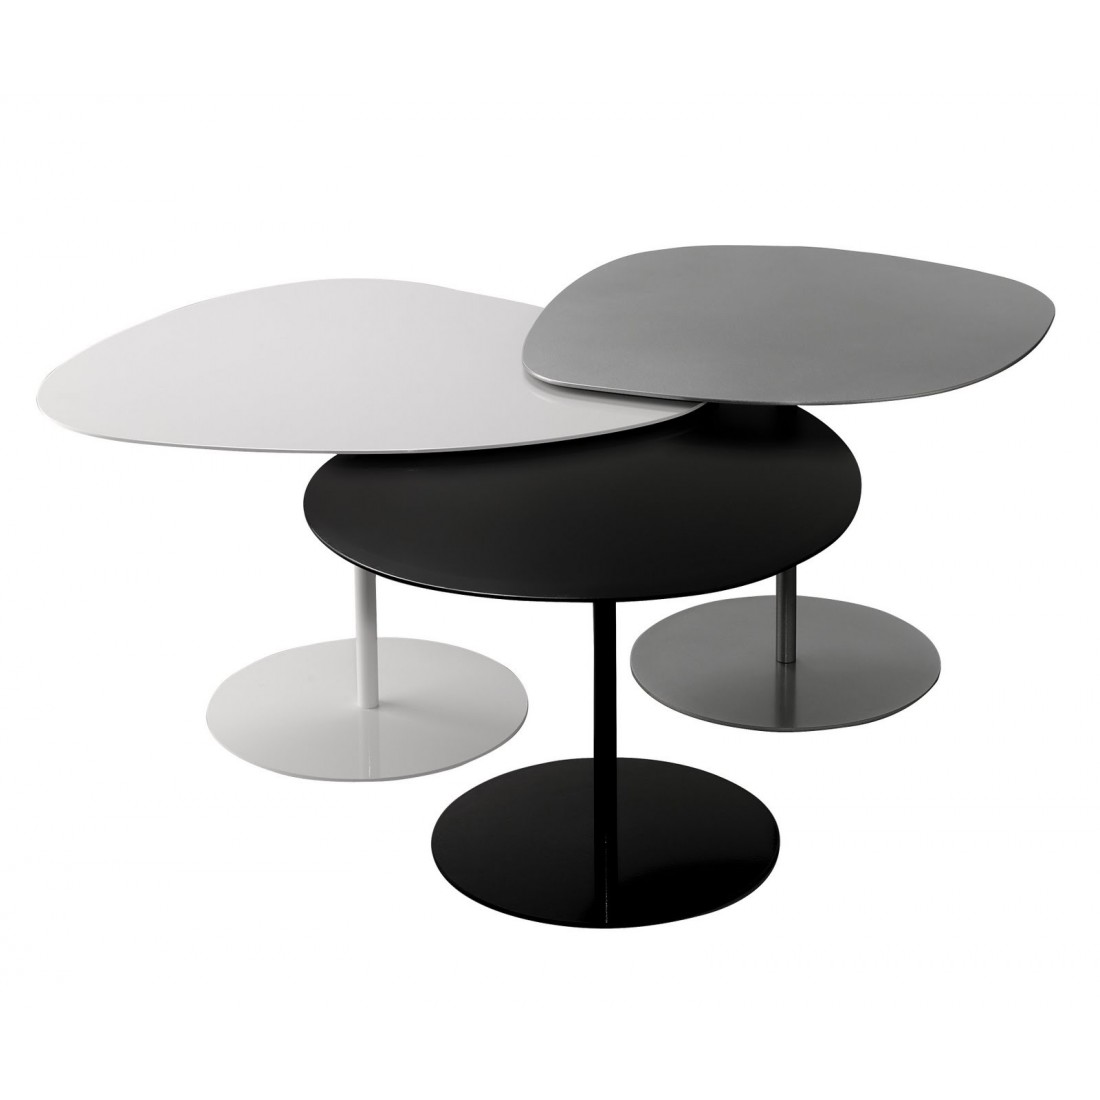 Tables basse galets en aluminium lot de 3 mati re grise - Table basse original pas cher ...